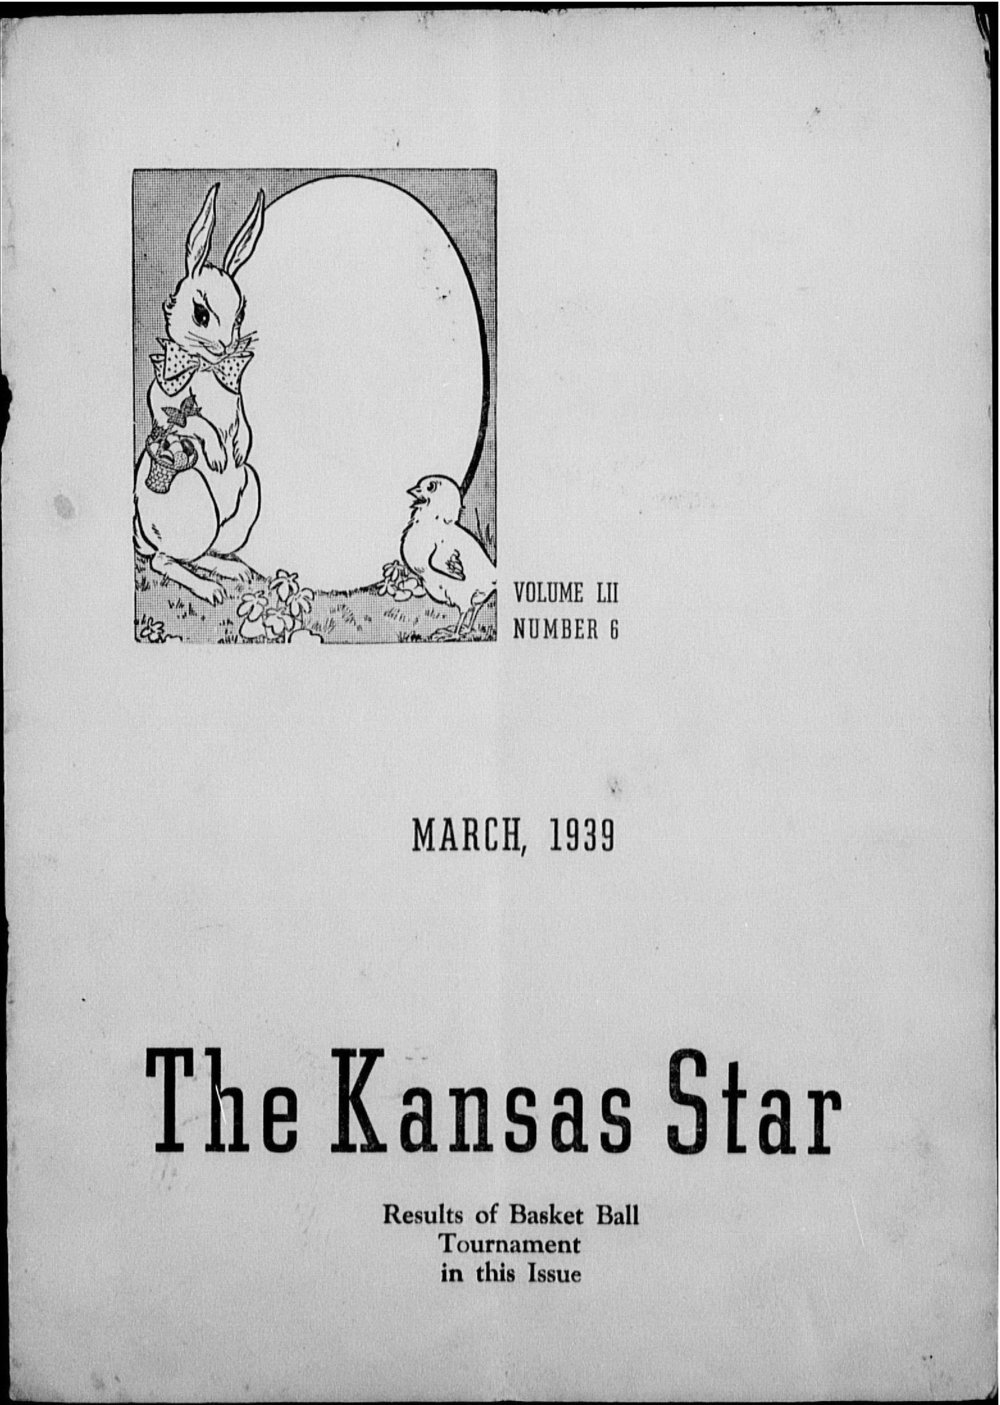 The Kansas Star, volume 52, number 6 - Front cover